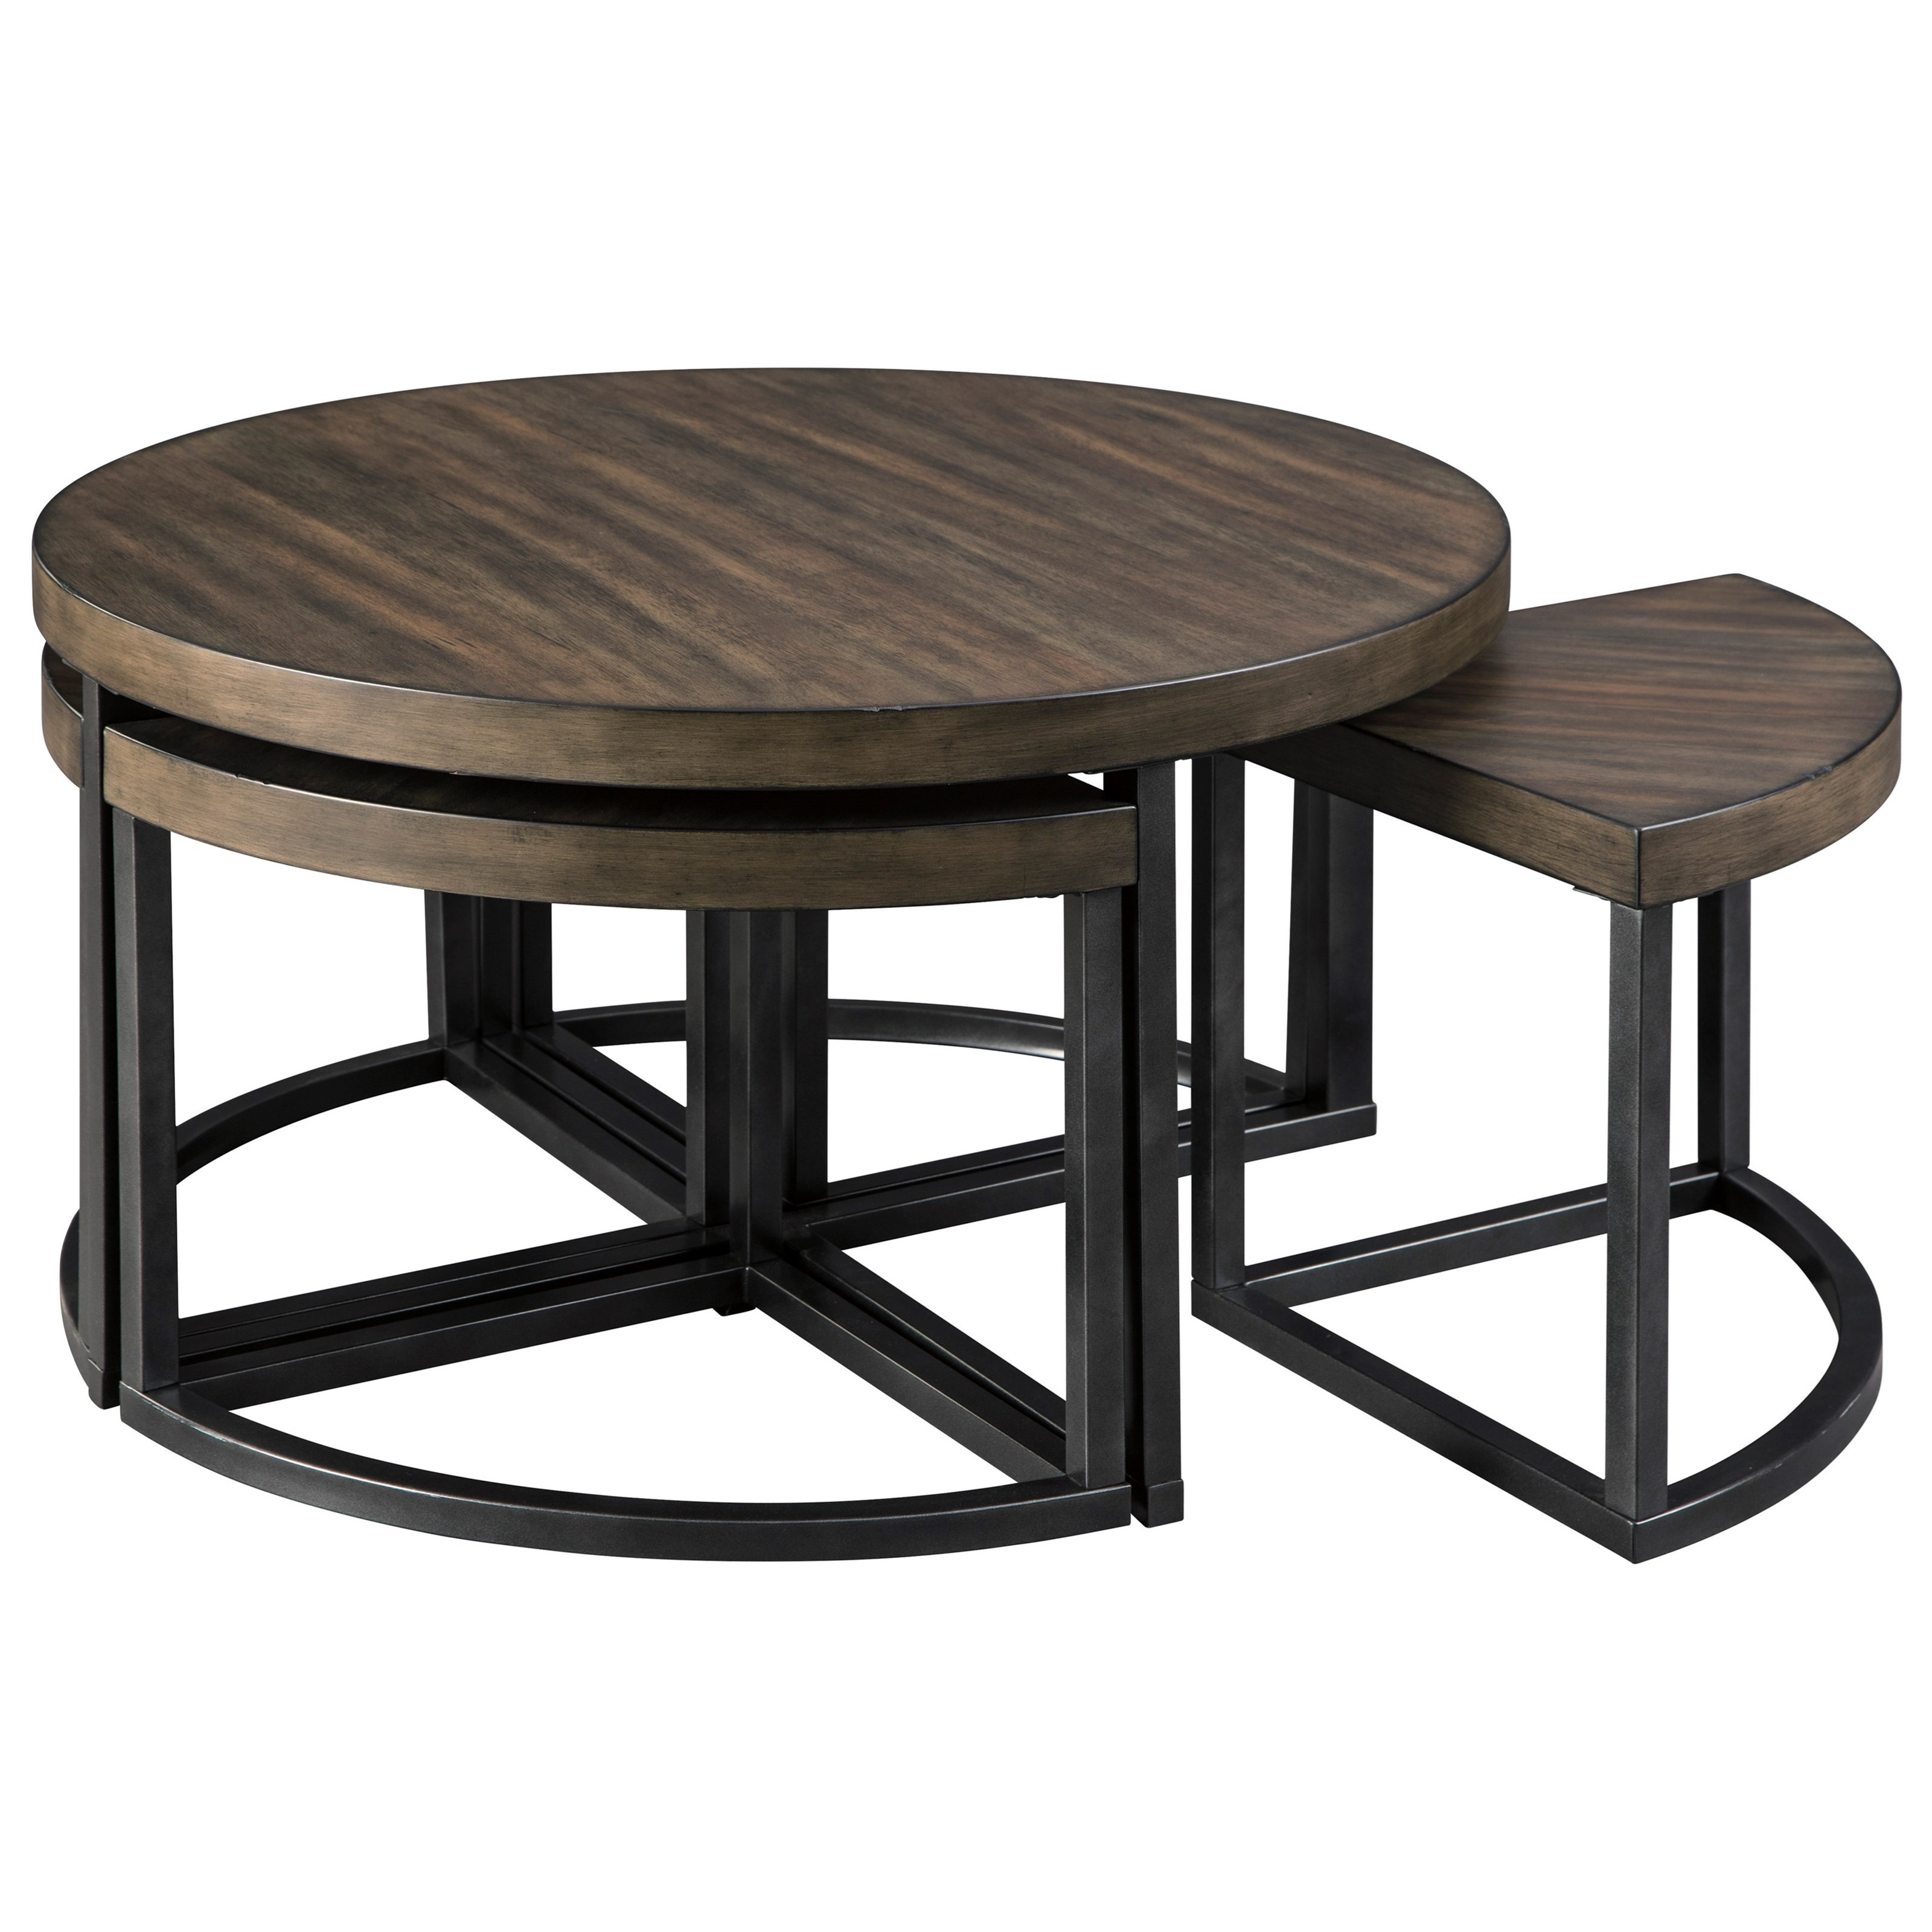 Cocktail Table w/ 4 Stools